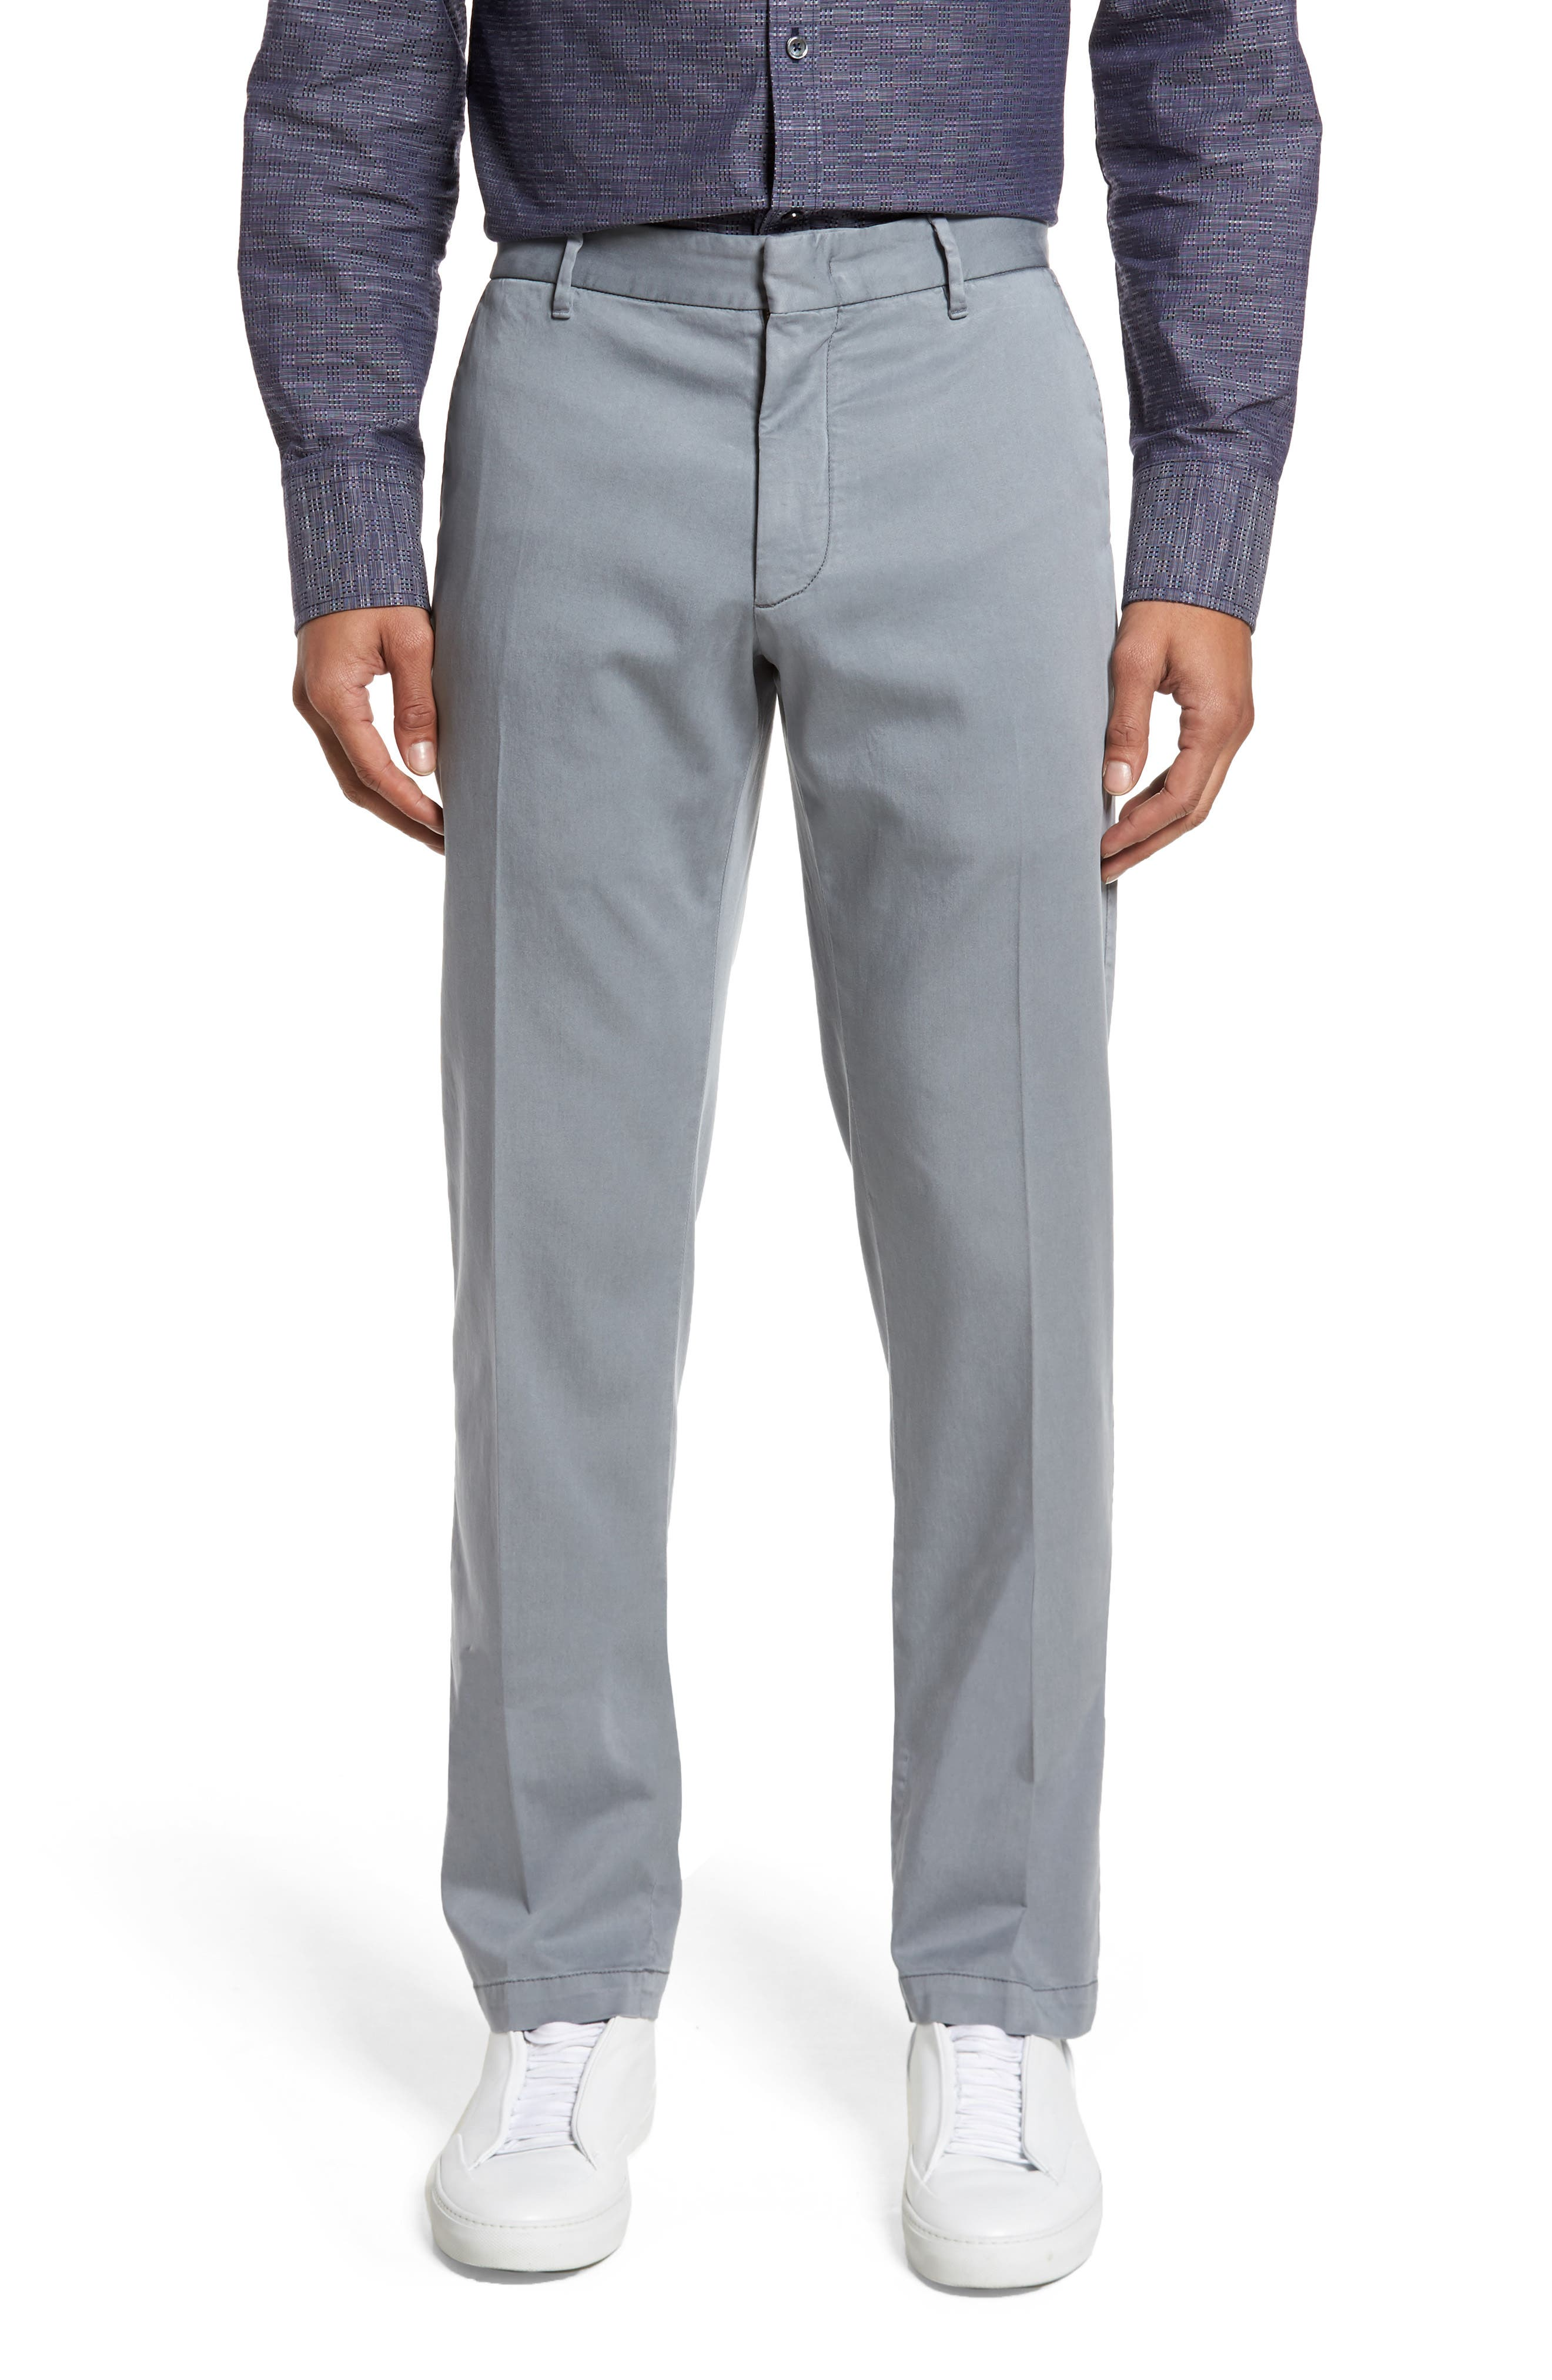 ZACHARY PRELL, Aster Straight Fit Pants, Main thumbnail 1, color, GREY